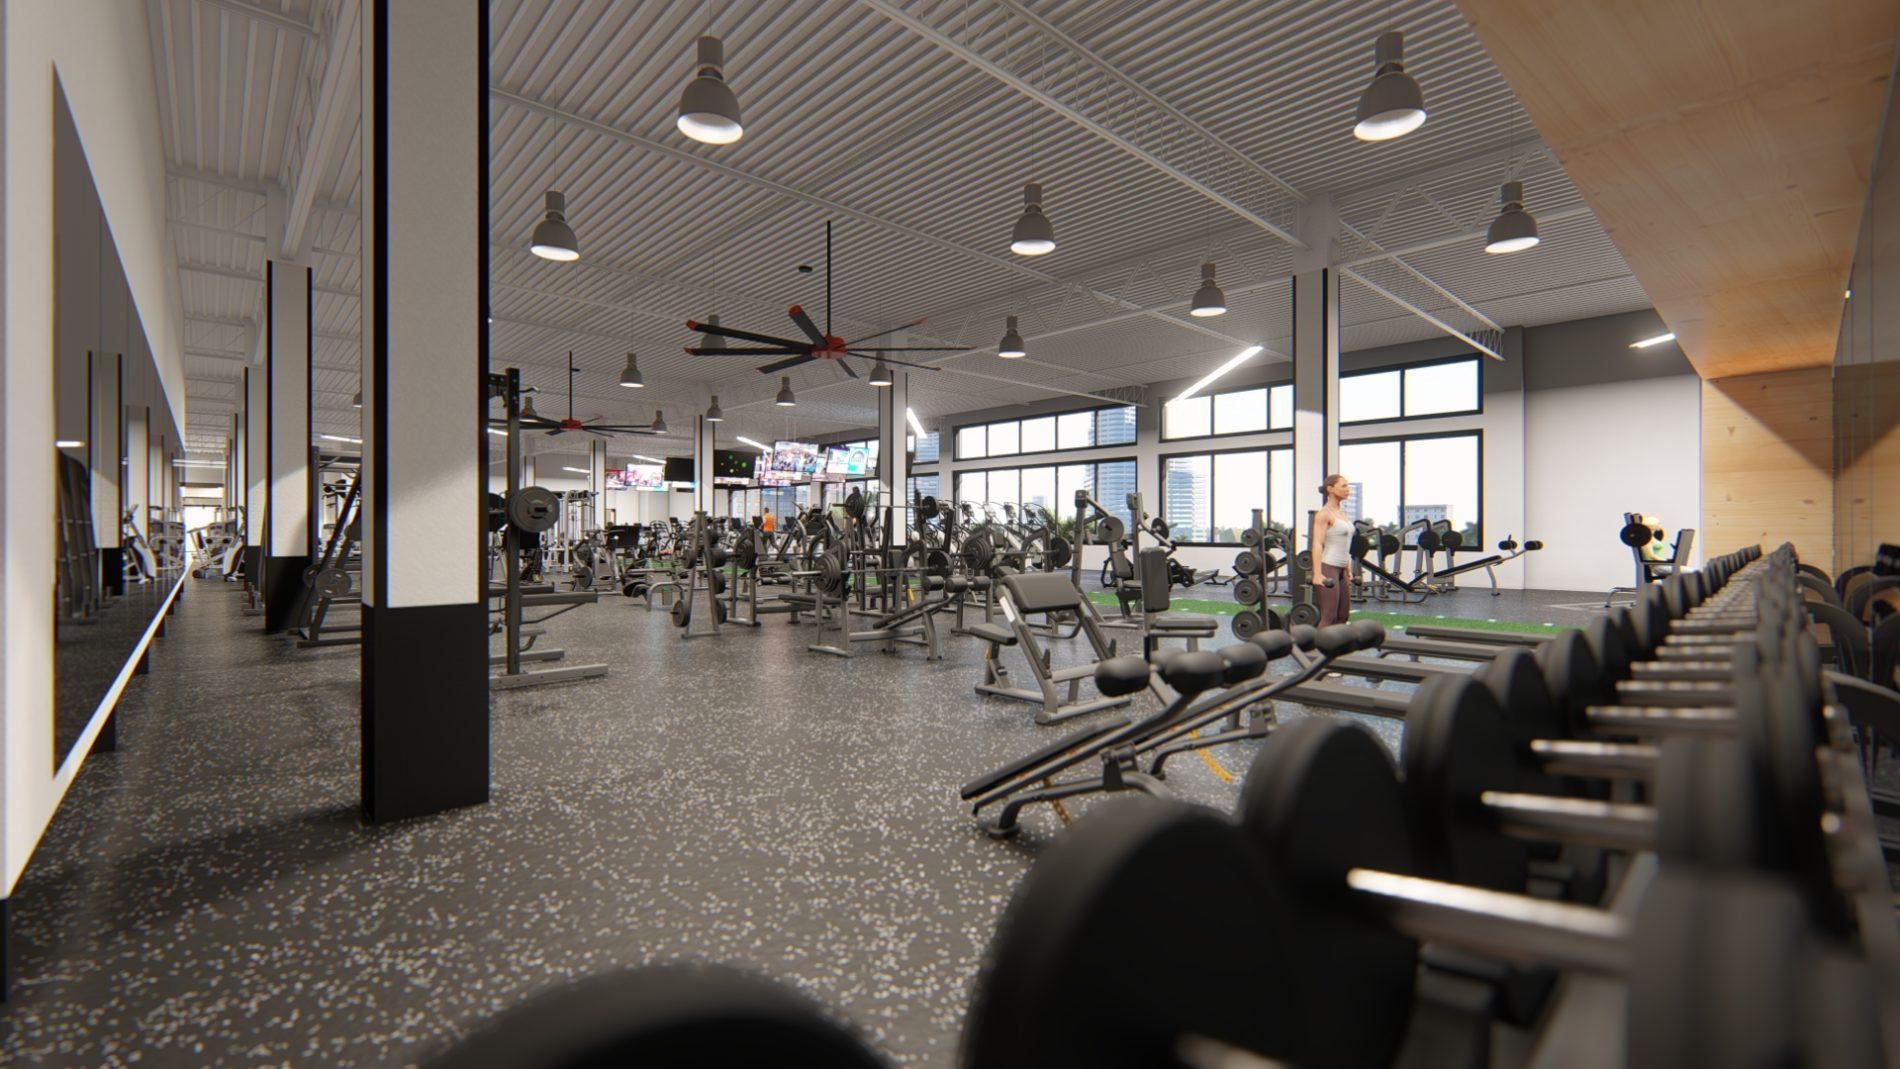 Architectural rendering of gym 3D design model